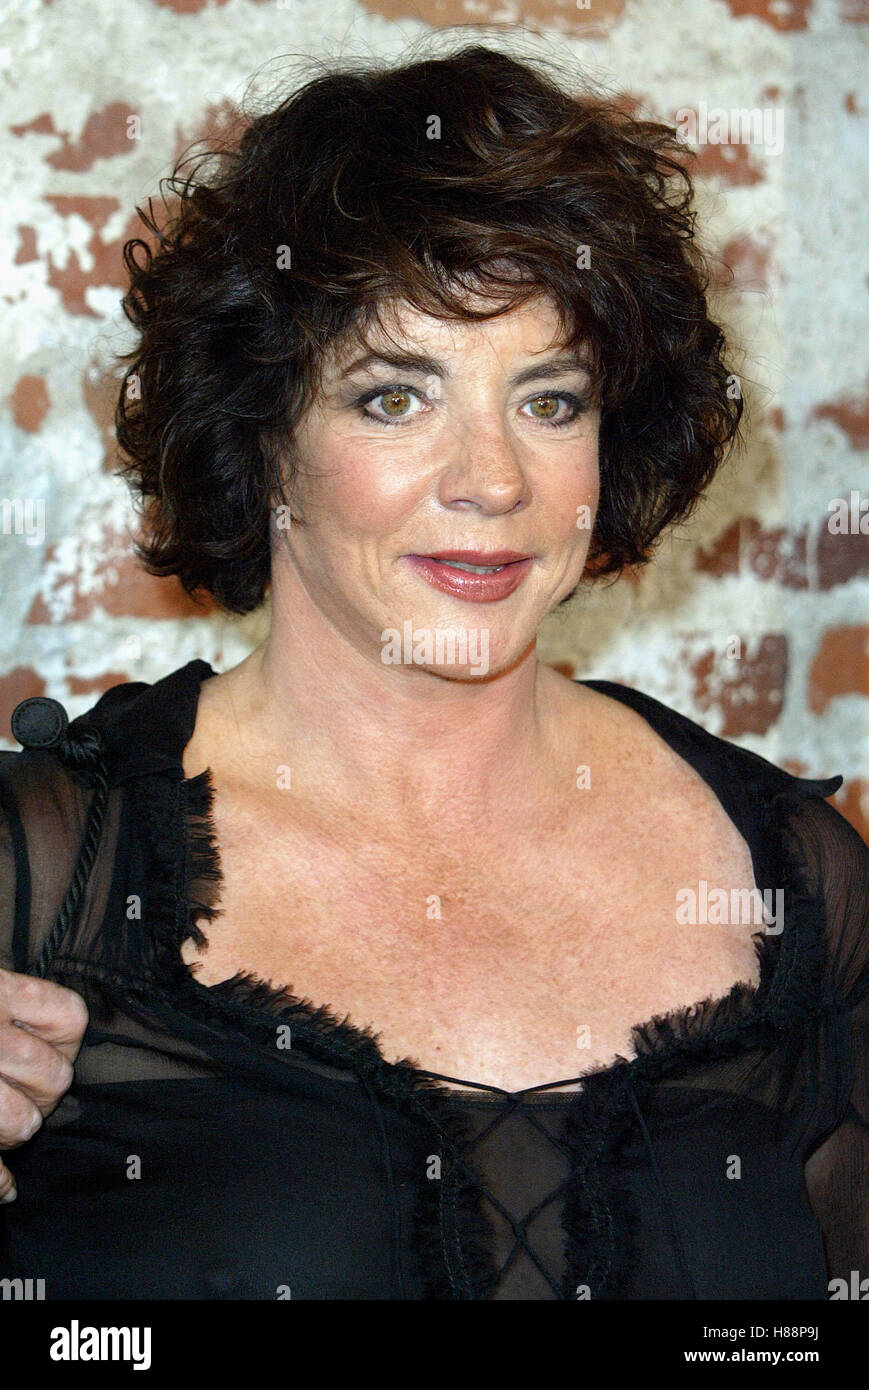 STOCKARD CHANNING LE DIVORCE FILM PREMIERE WESTWOOD LOS ANGELES USA 29 July 2003 - Stock Image